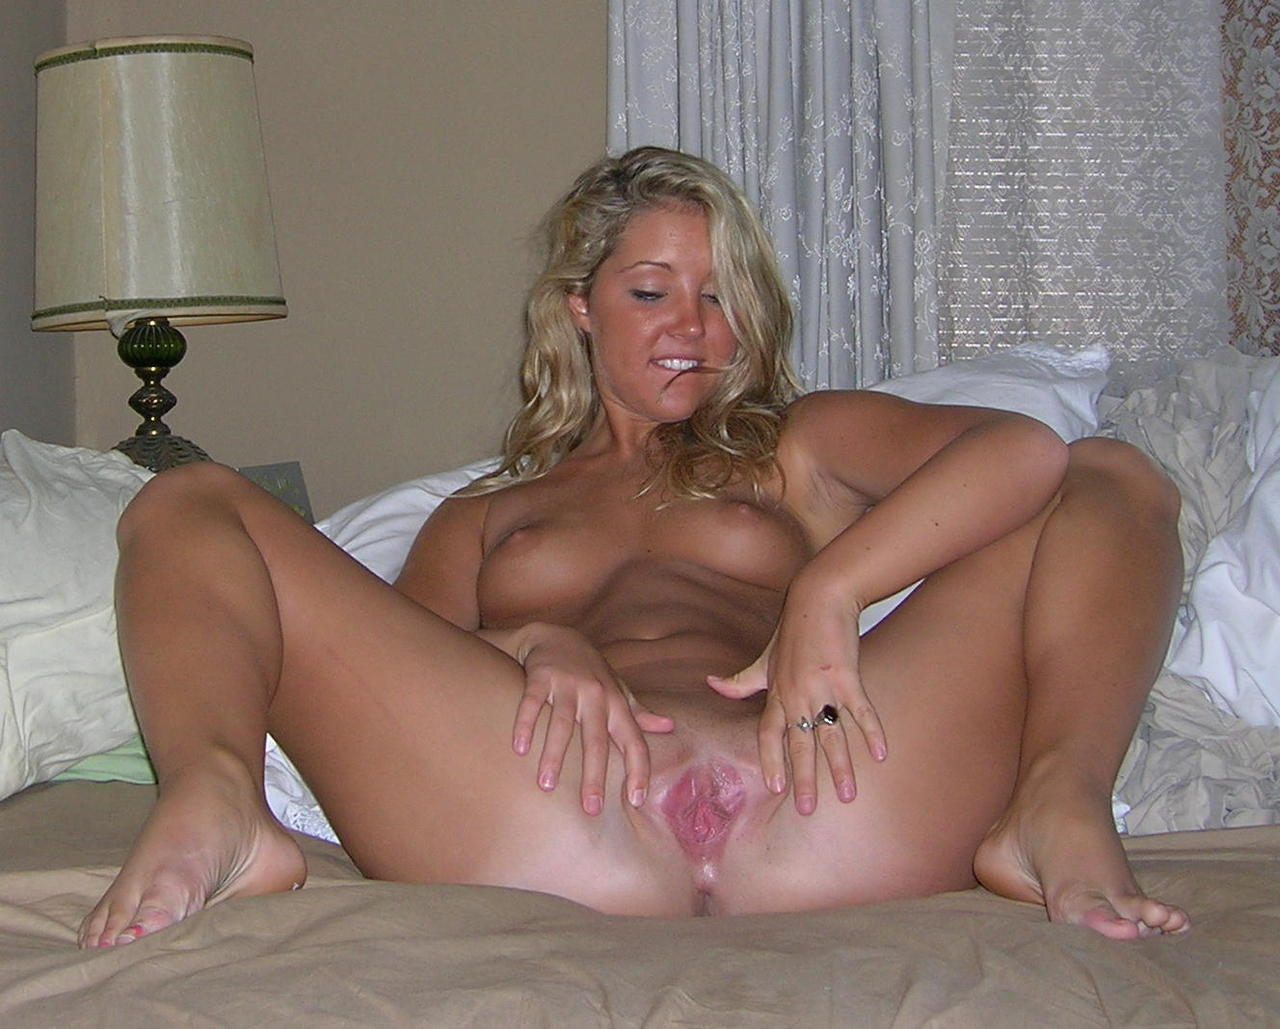 real sweden sister brother fucking on red tube free sex